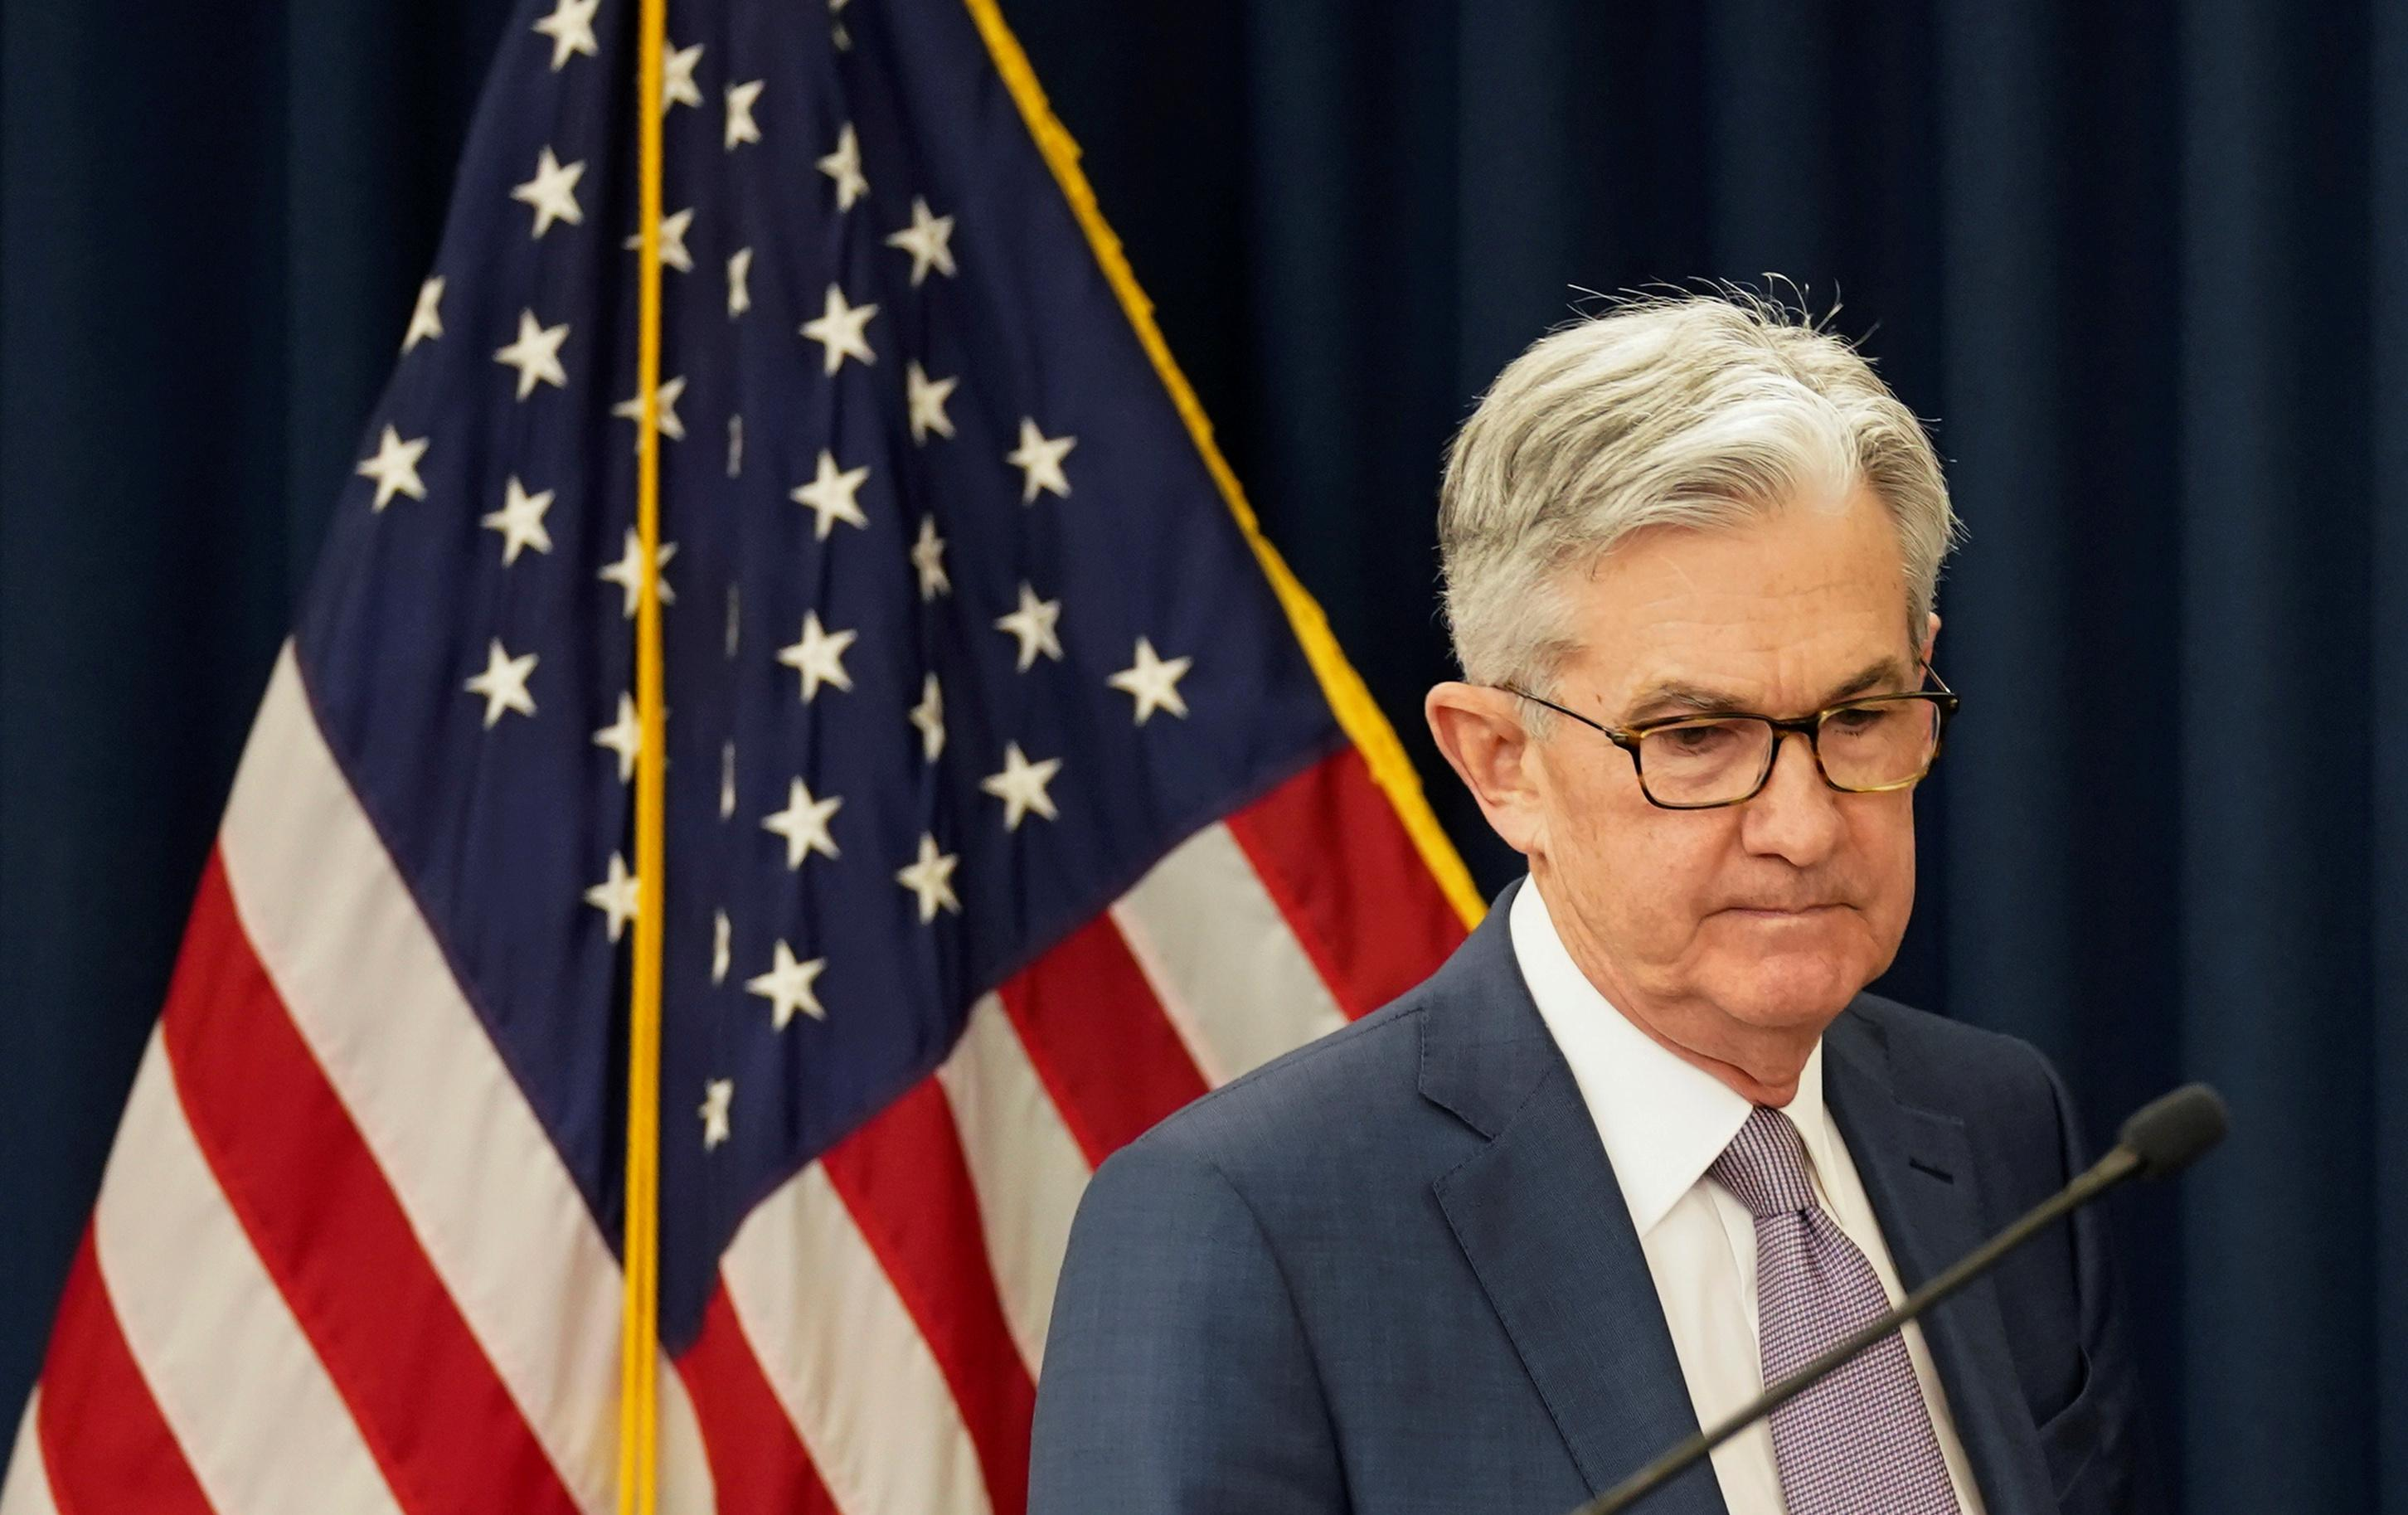 U.S. Federal Reserve Chairman Jerome Powell arrives to speak to reportersin Washington, U.S., March 3, 2020. Kevin Lamarque